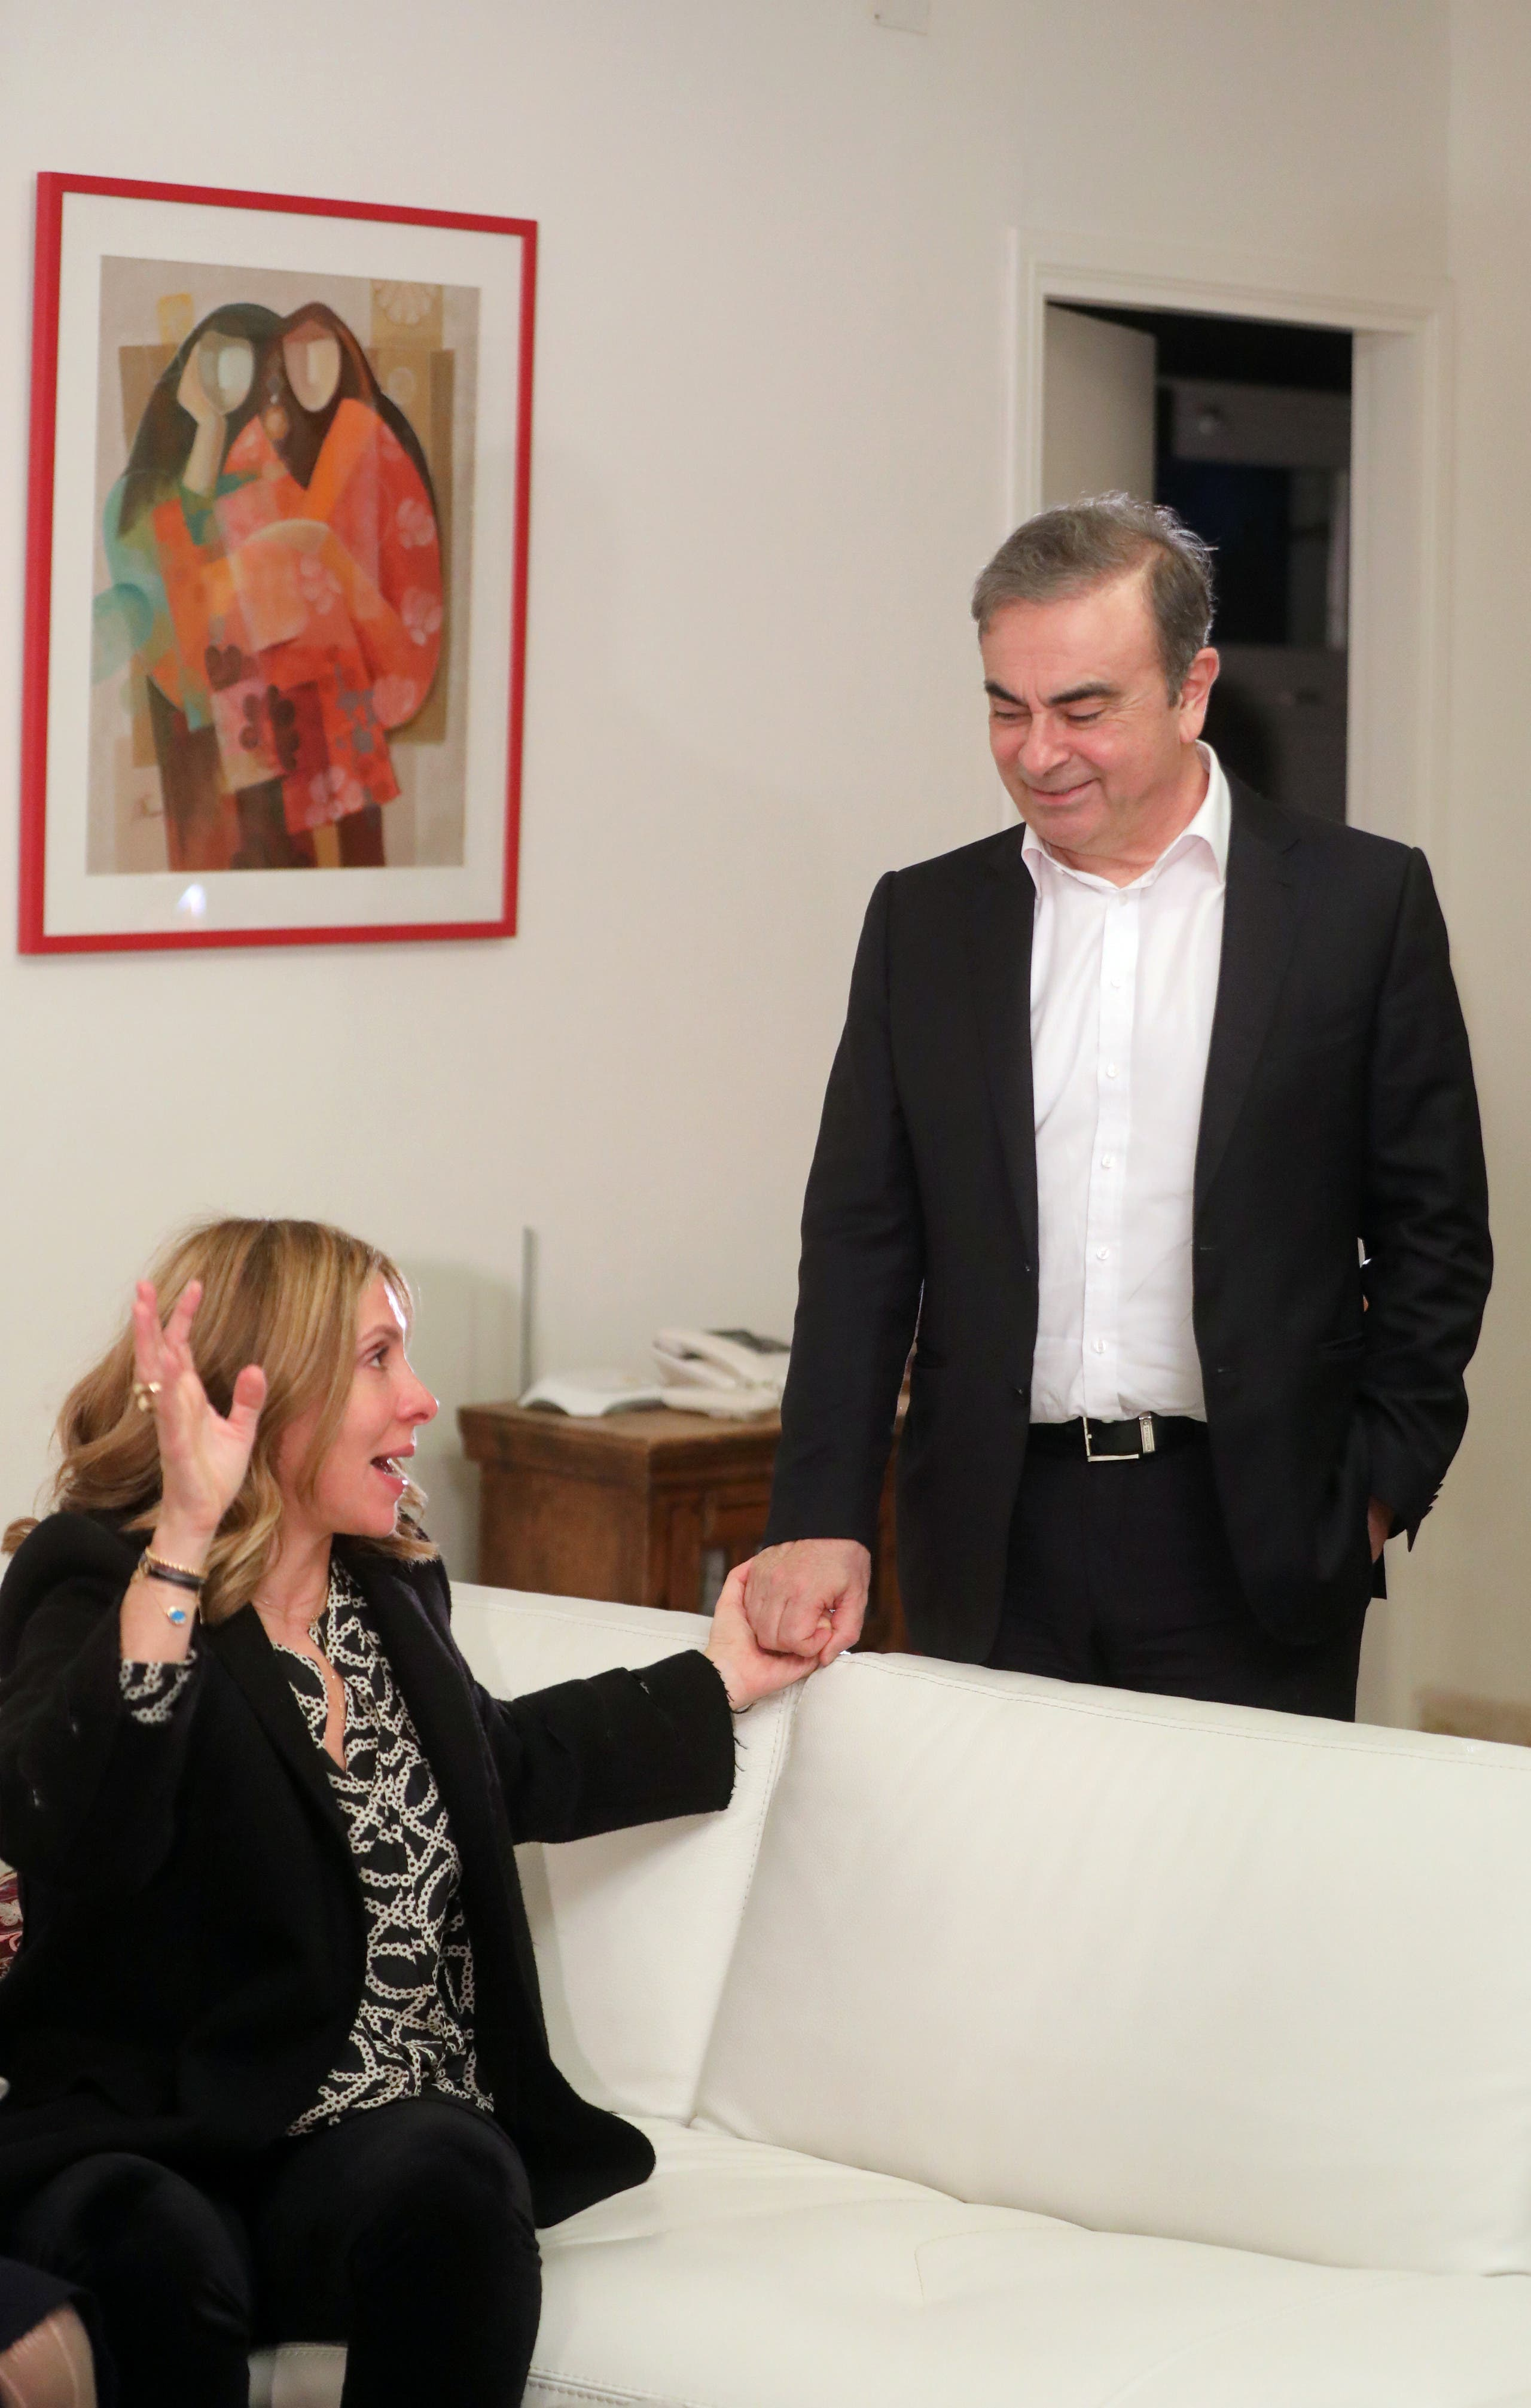 Former Nissan chairman Carlos Ghosn and his wife Carole Ghosn pose for a picture after an exclusive interview with Reuters in Beirut, Jan. 14, 2020. (Reuters)